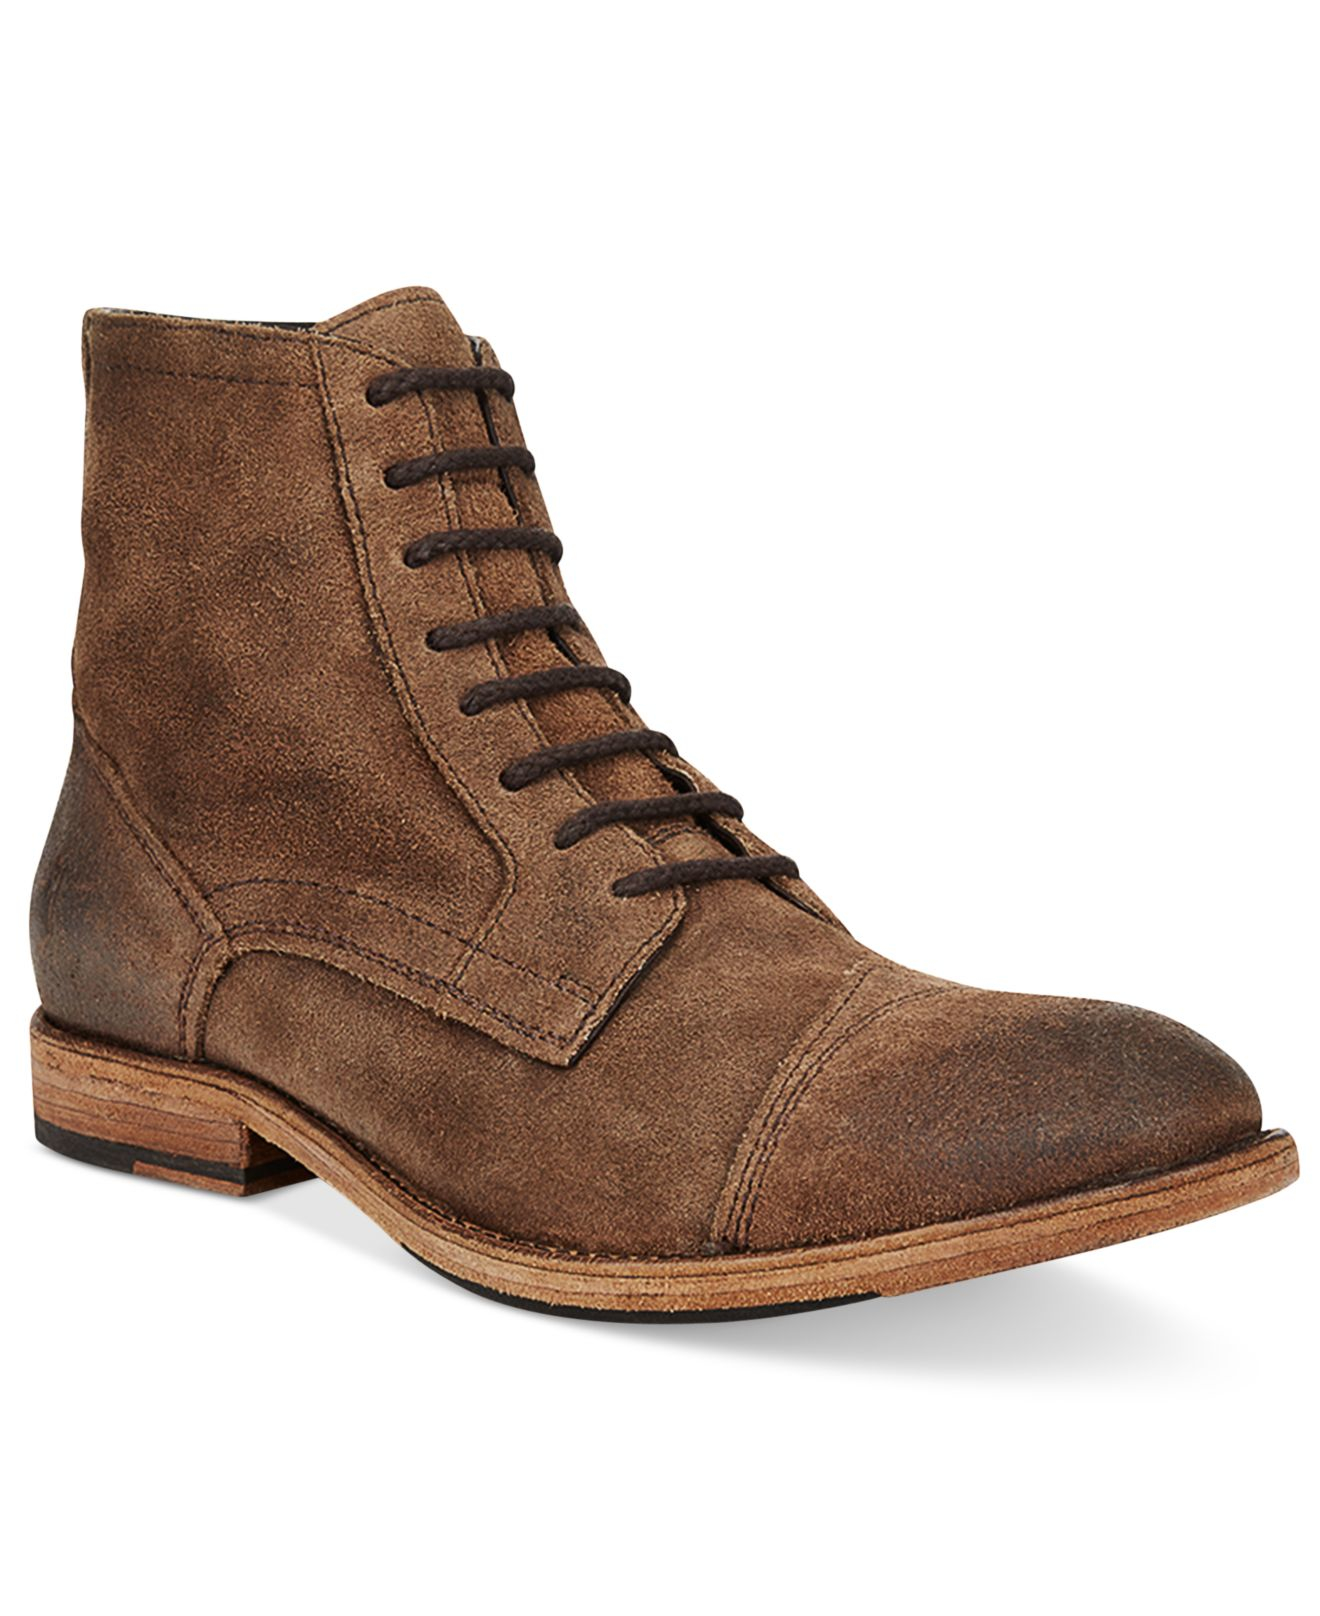 frye s everett lace up boots in brown for lyst